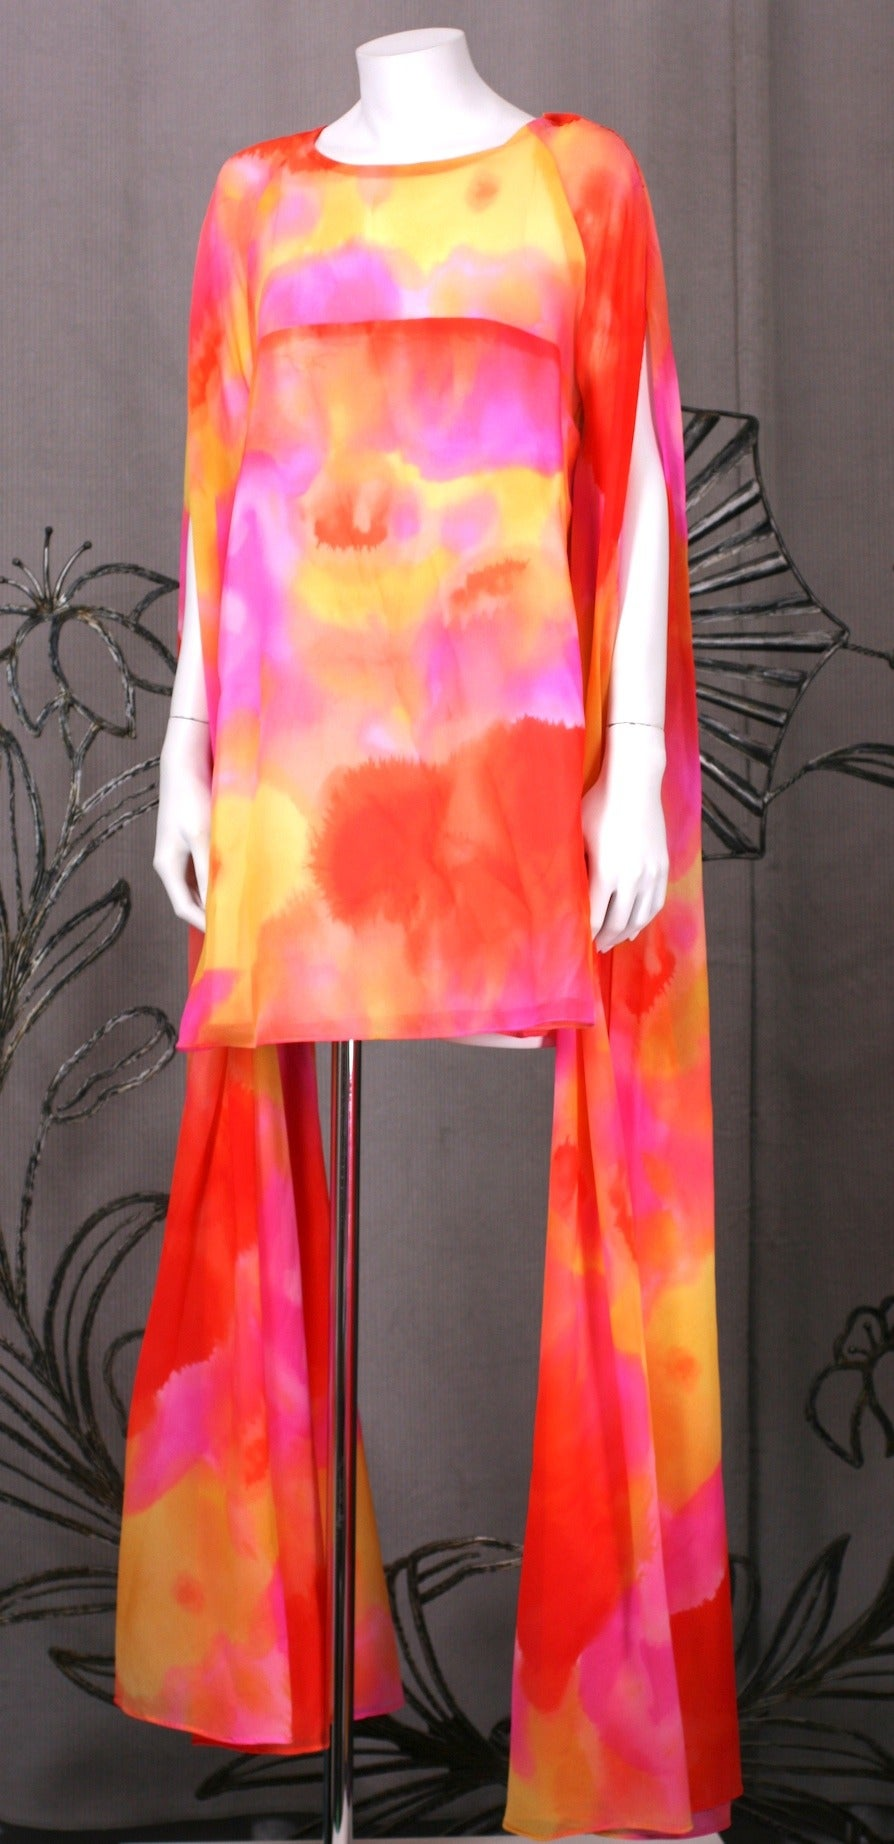 Unusual mini dress with elongated tubular flared sleeves and vibrant, sheer watercolor print. Dress is lined from bust down, the top bodice and sleeves are sheer.  Long sleeves are slashed for movement. Back Zip entry. 1960's USA. Very Good